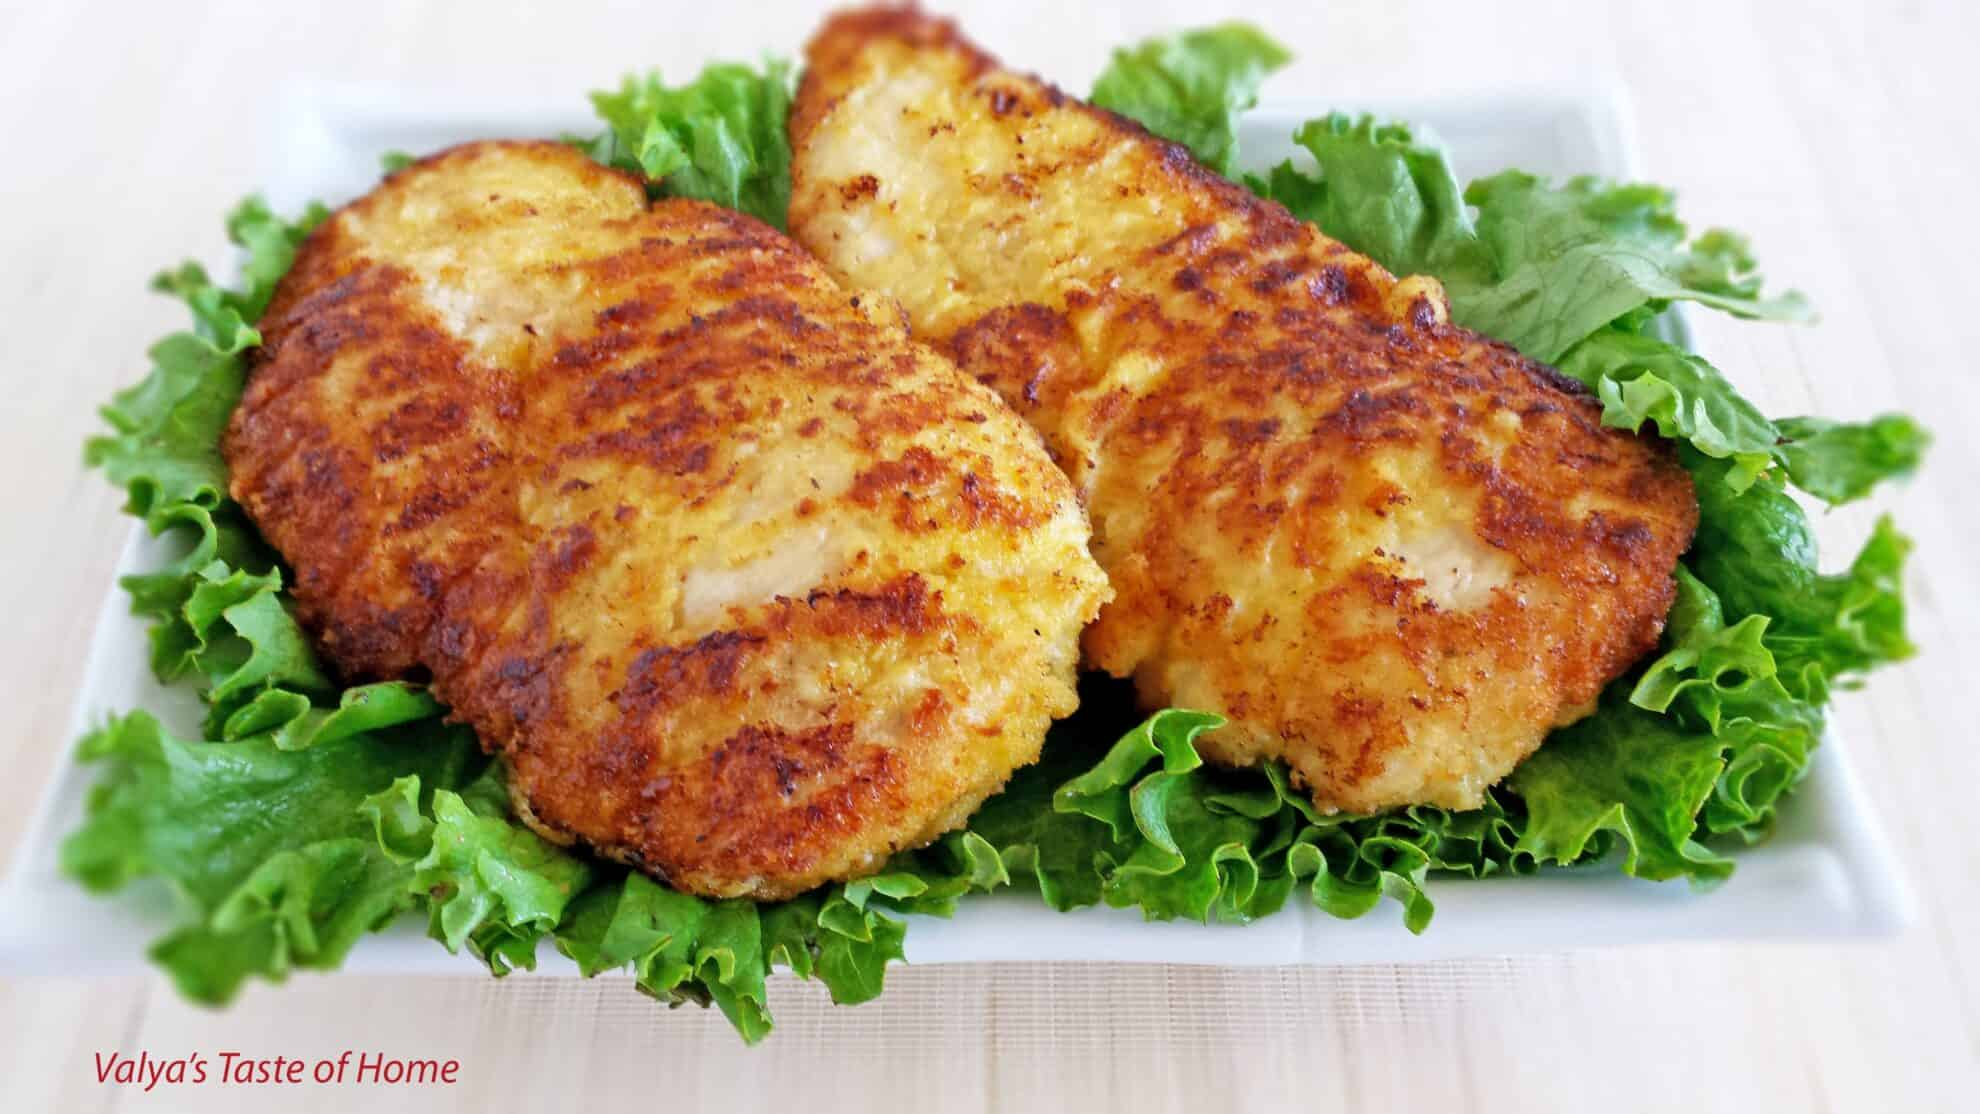 Breaded Parmesan Chicken Breast - Valya's Taste of Home